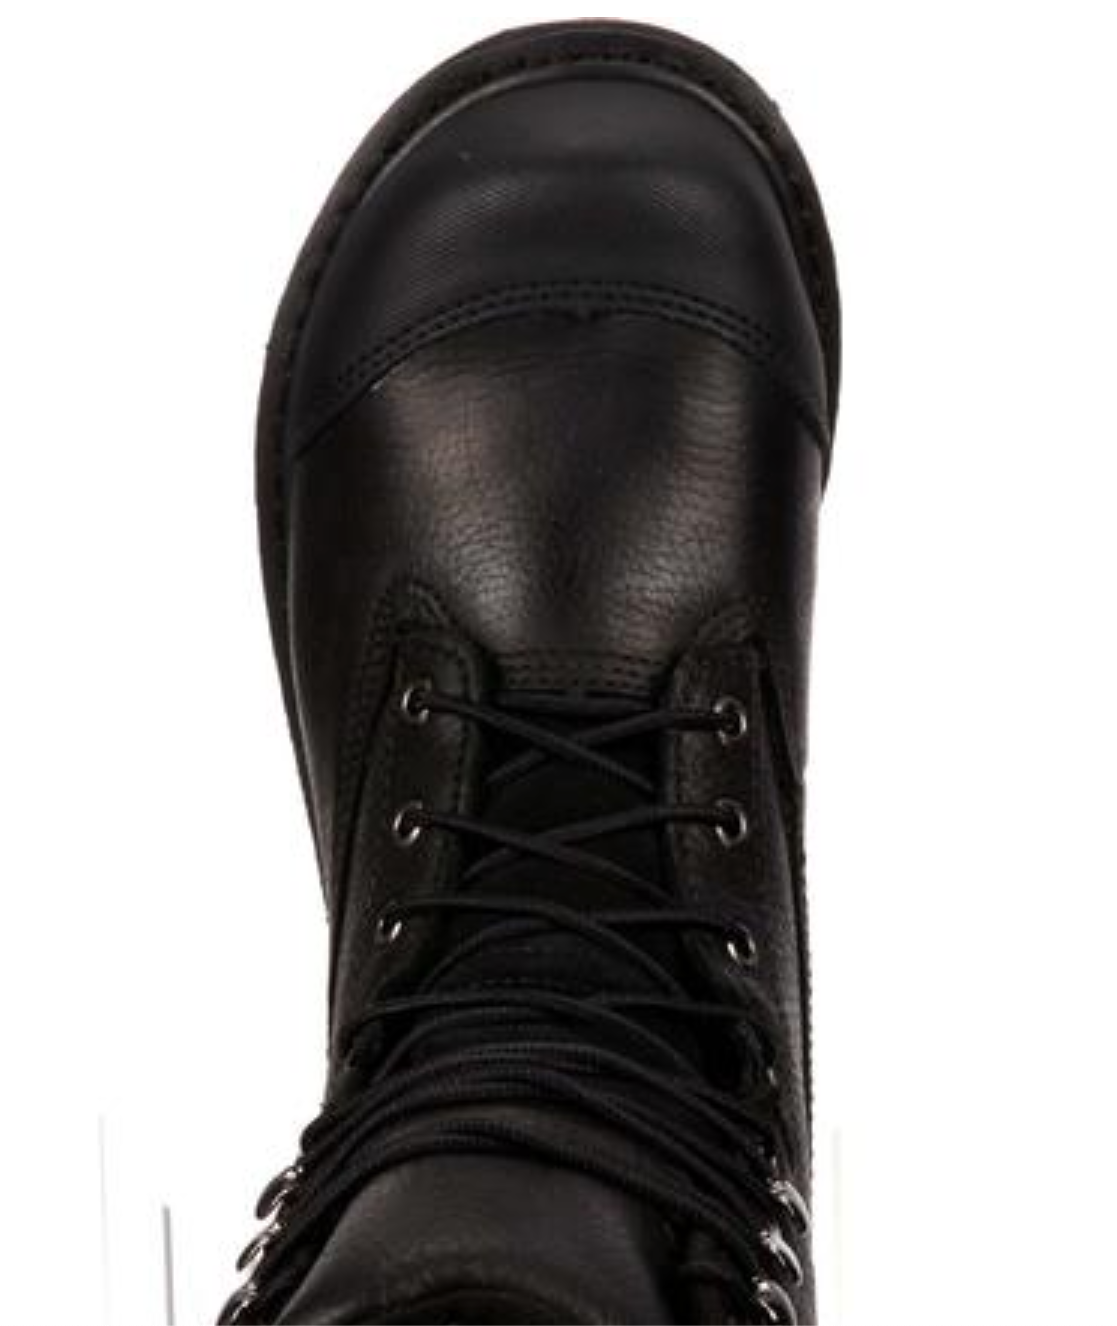 Lehigh by Rocky Work /& Safety Boots /& Shoes Black Various Features /& Styles